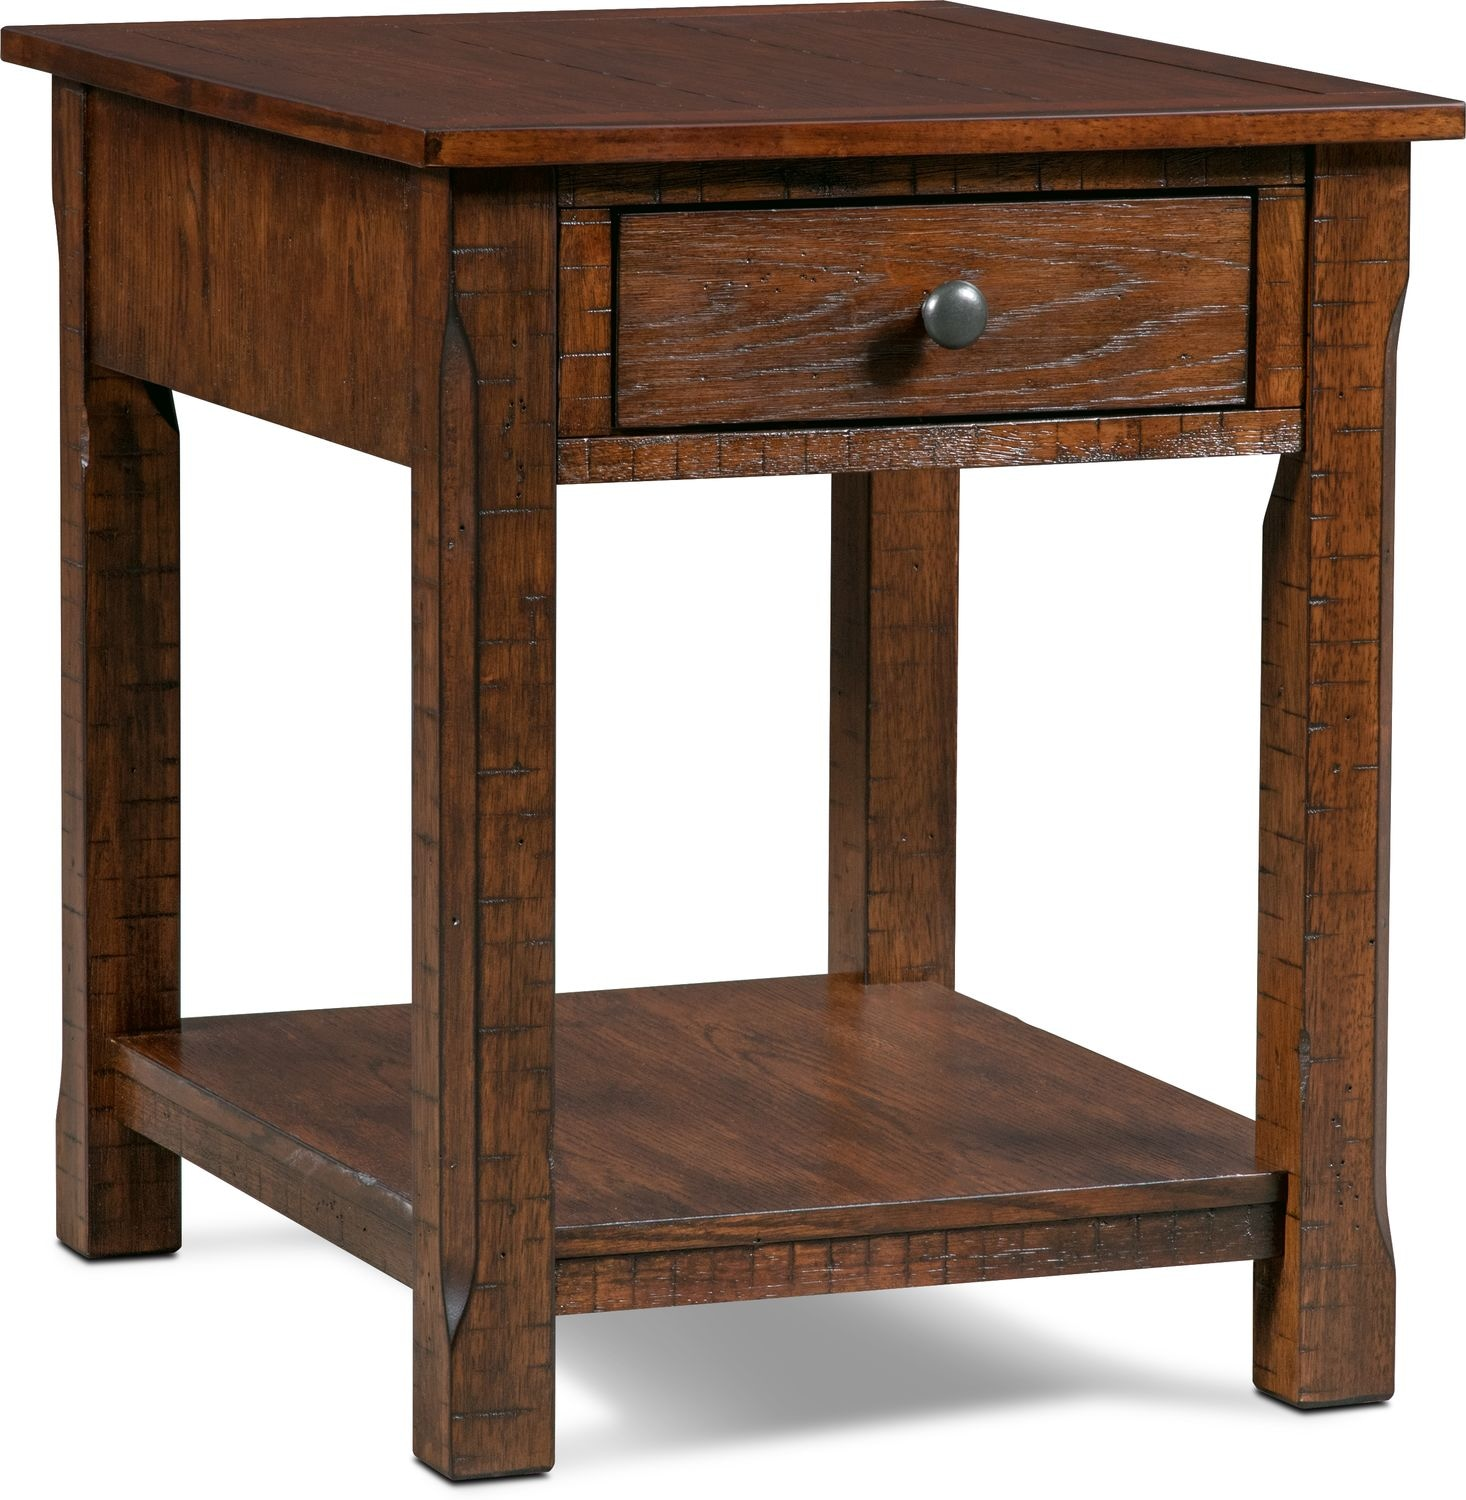 sheffield rectangular end table walnut value city furniture and accent click change natural cherry small lamps mosaic patio cabinet with doors kohls floor espresso finish door